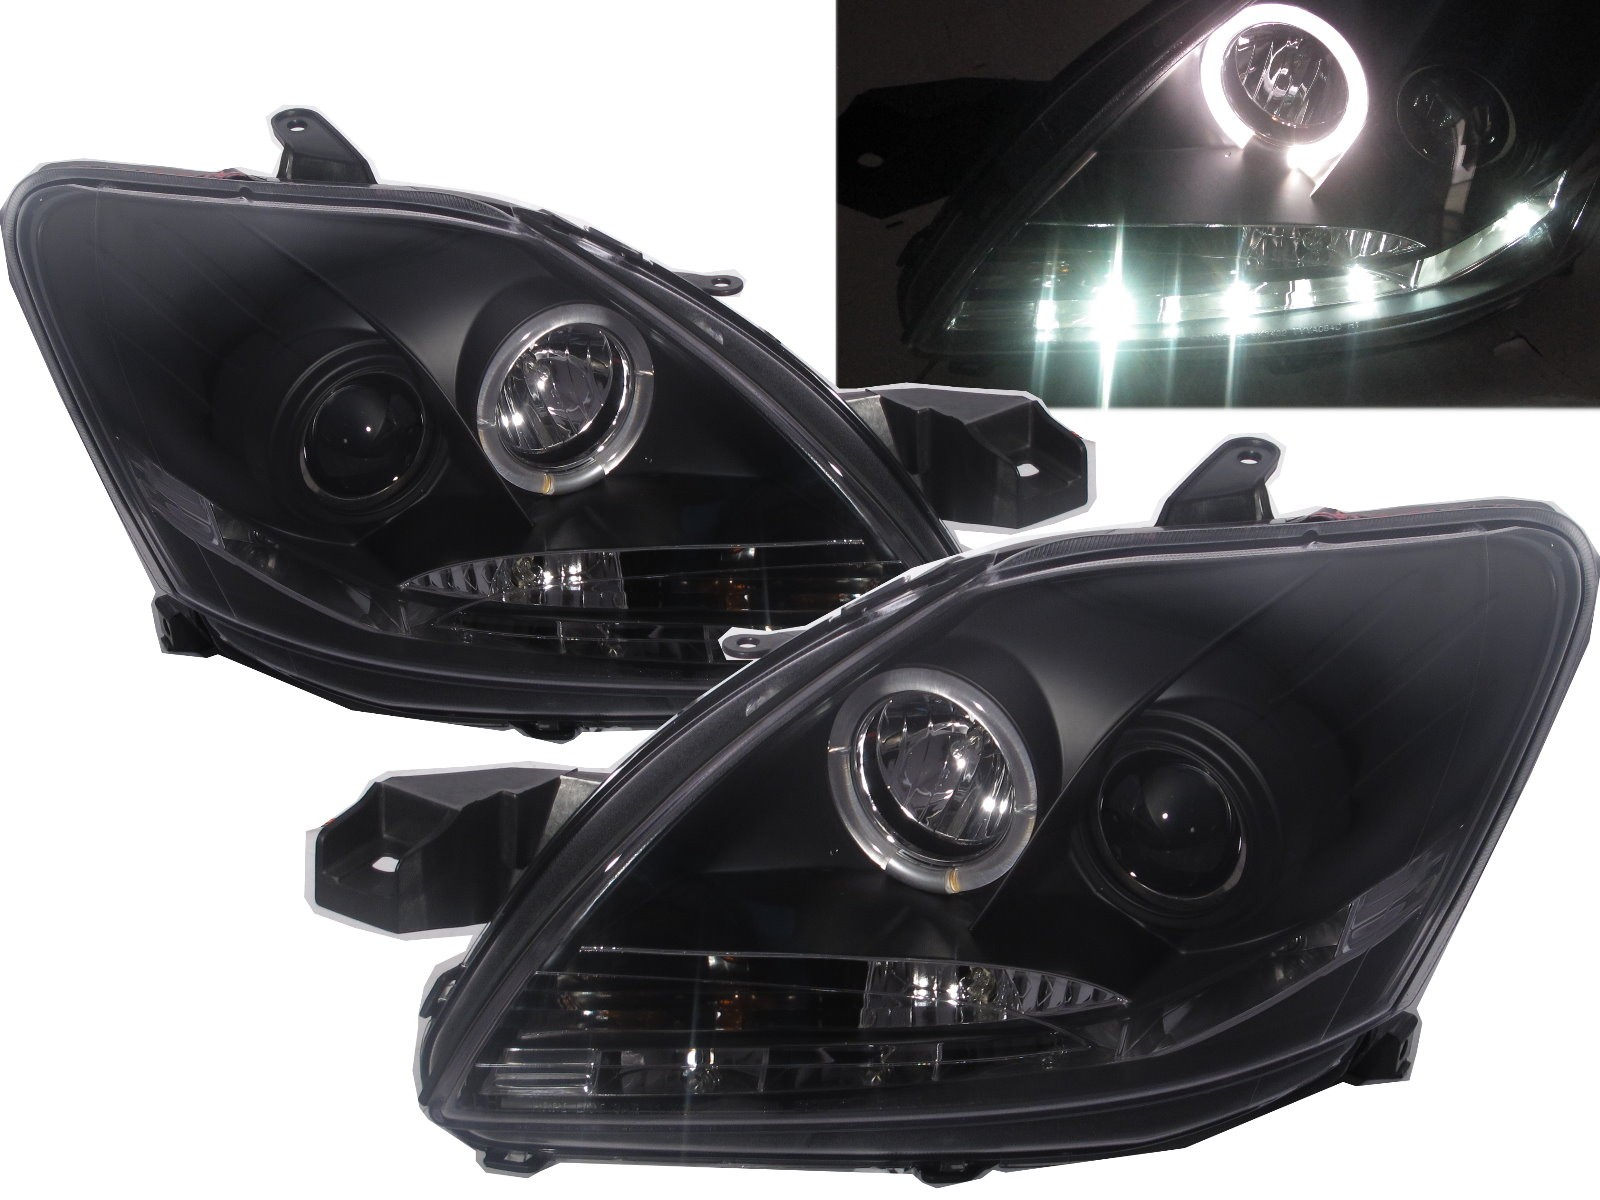 CrazyTheGod LIMO XP90 Second generation 2009-2013 FACELIFT Sedan 4D Angel-Eye Projector R8Look Headlight Headlamp Black V1 for TOYOTA LHD